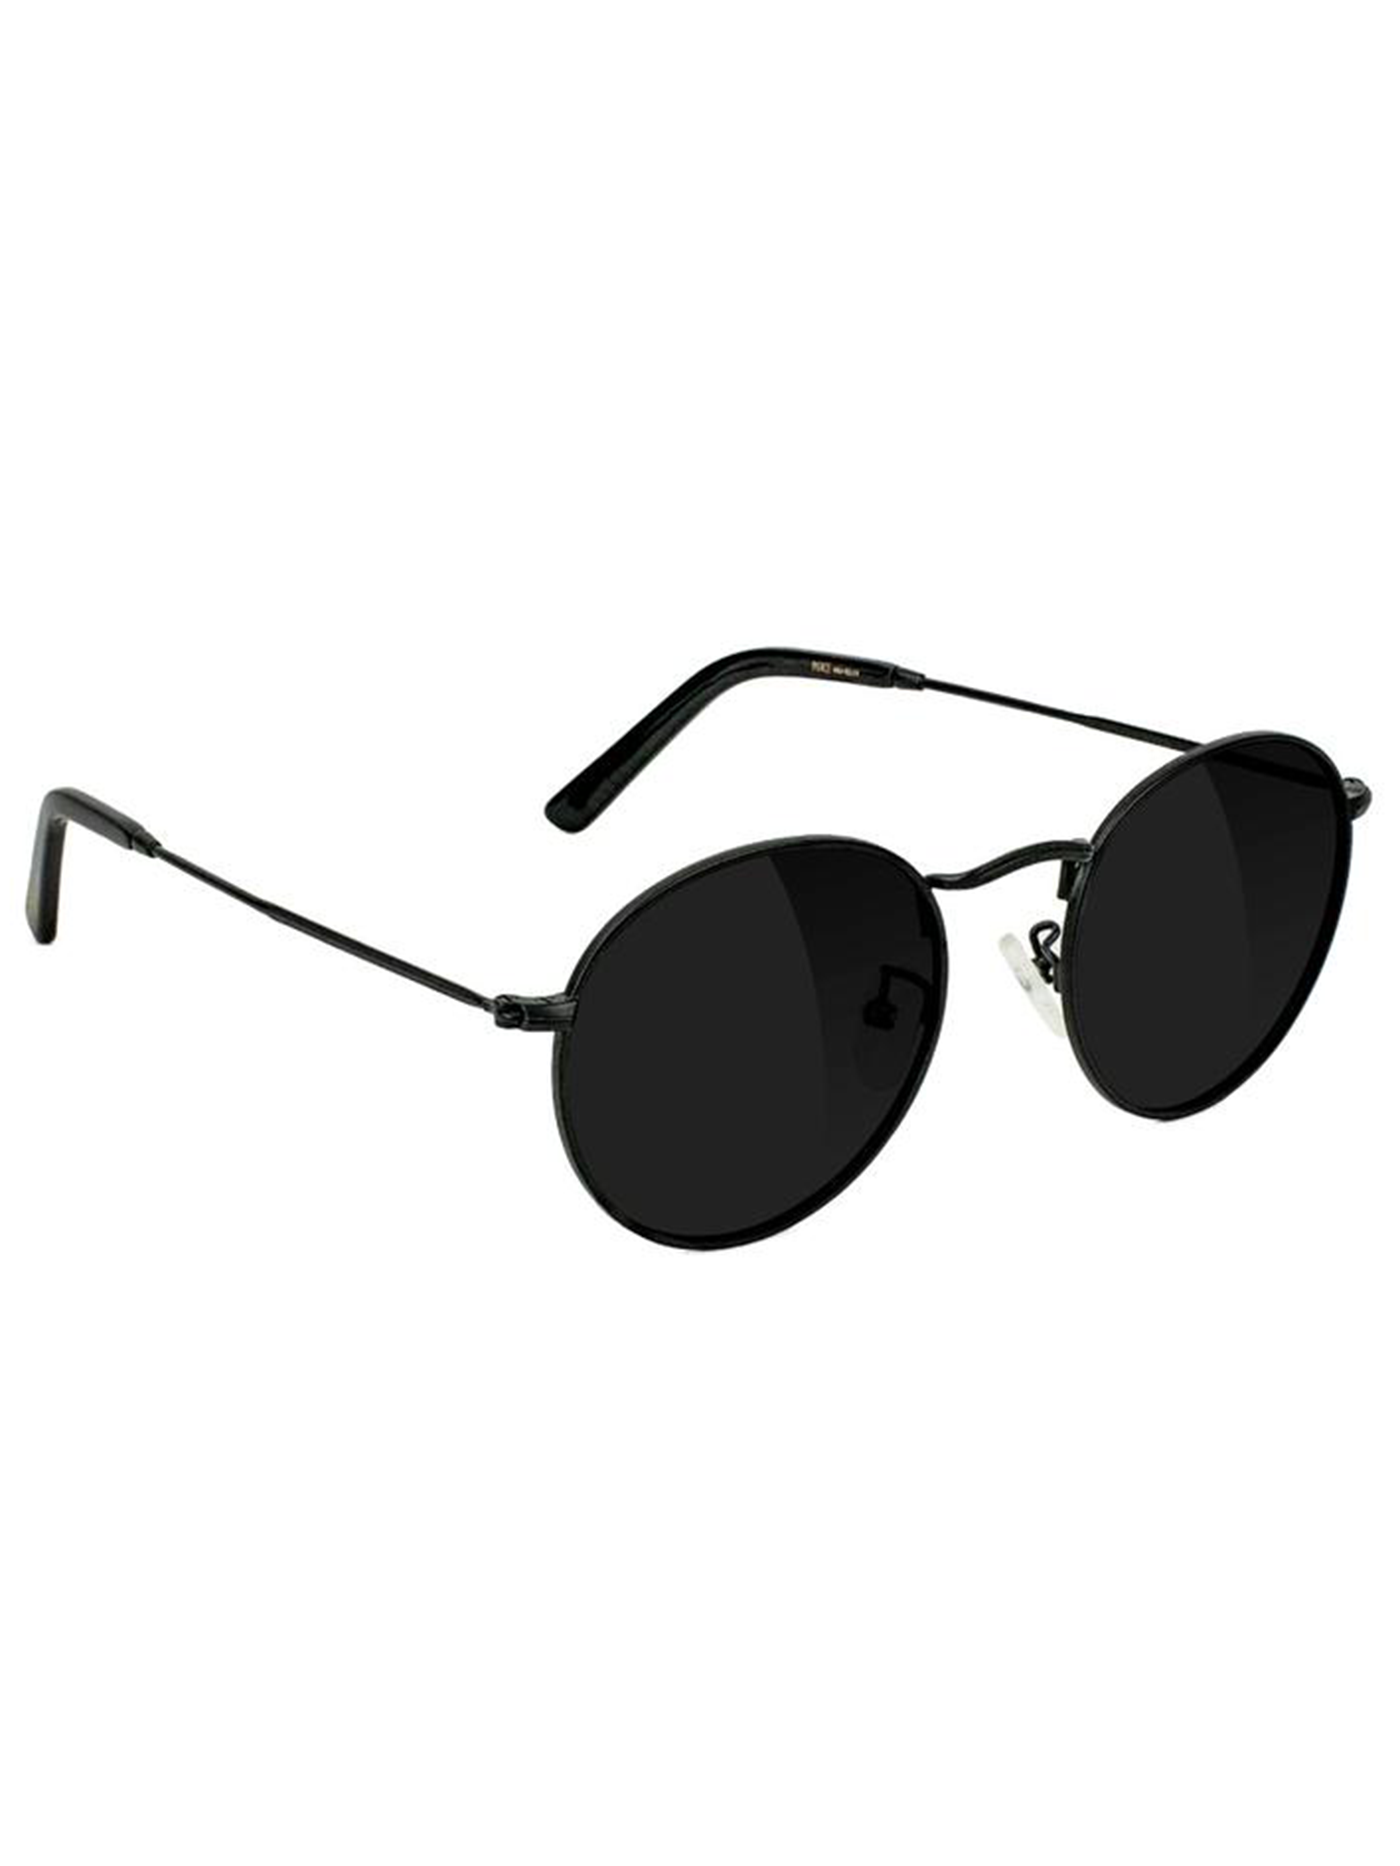 Pierce Premium Plus Polarized Sunglasses